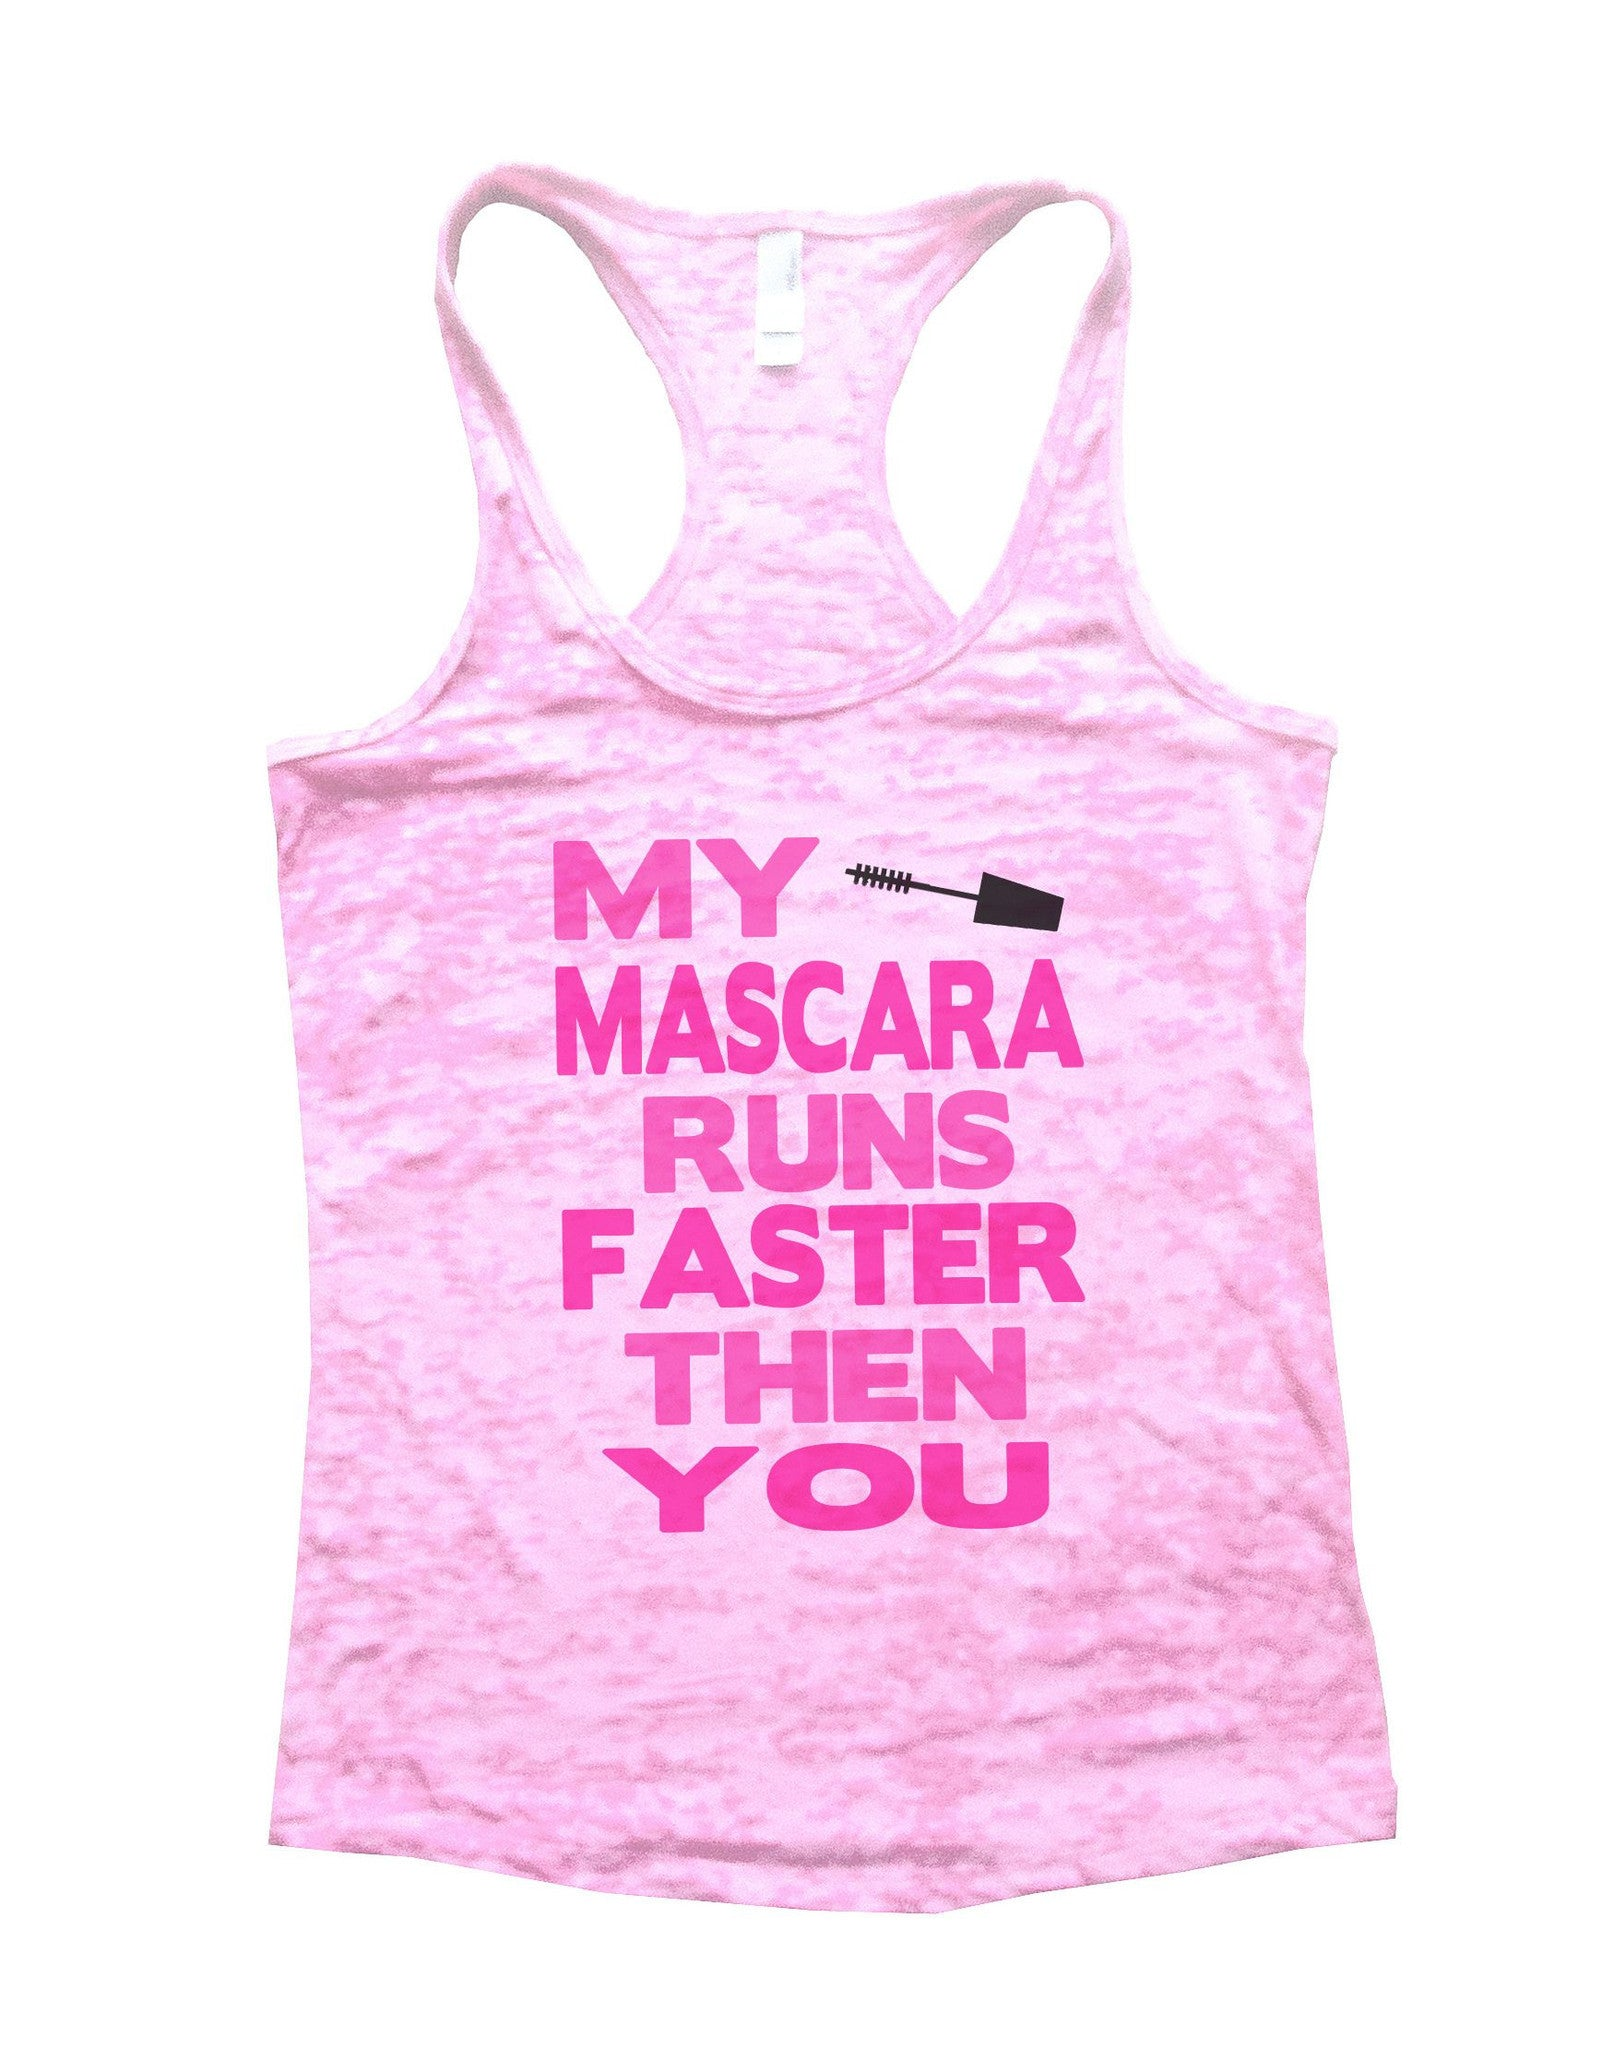 My Mascara Runs Faster Then You Burnout Tank Top By BurnoutTankTops.com - 641 - Funny Shirts Tank Tops Burnouts and Triblends  - 1